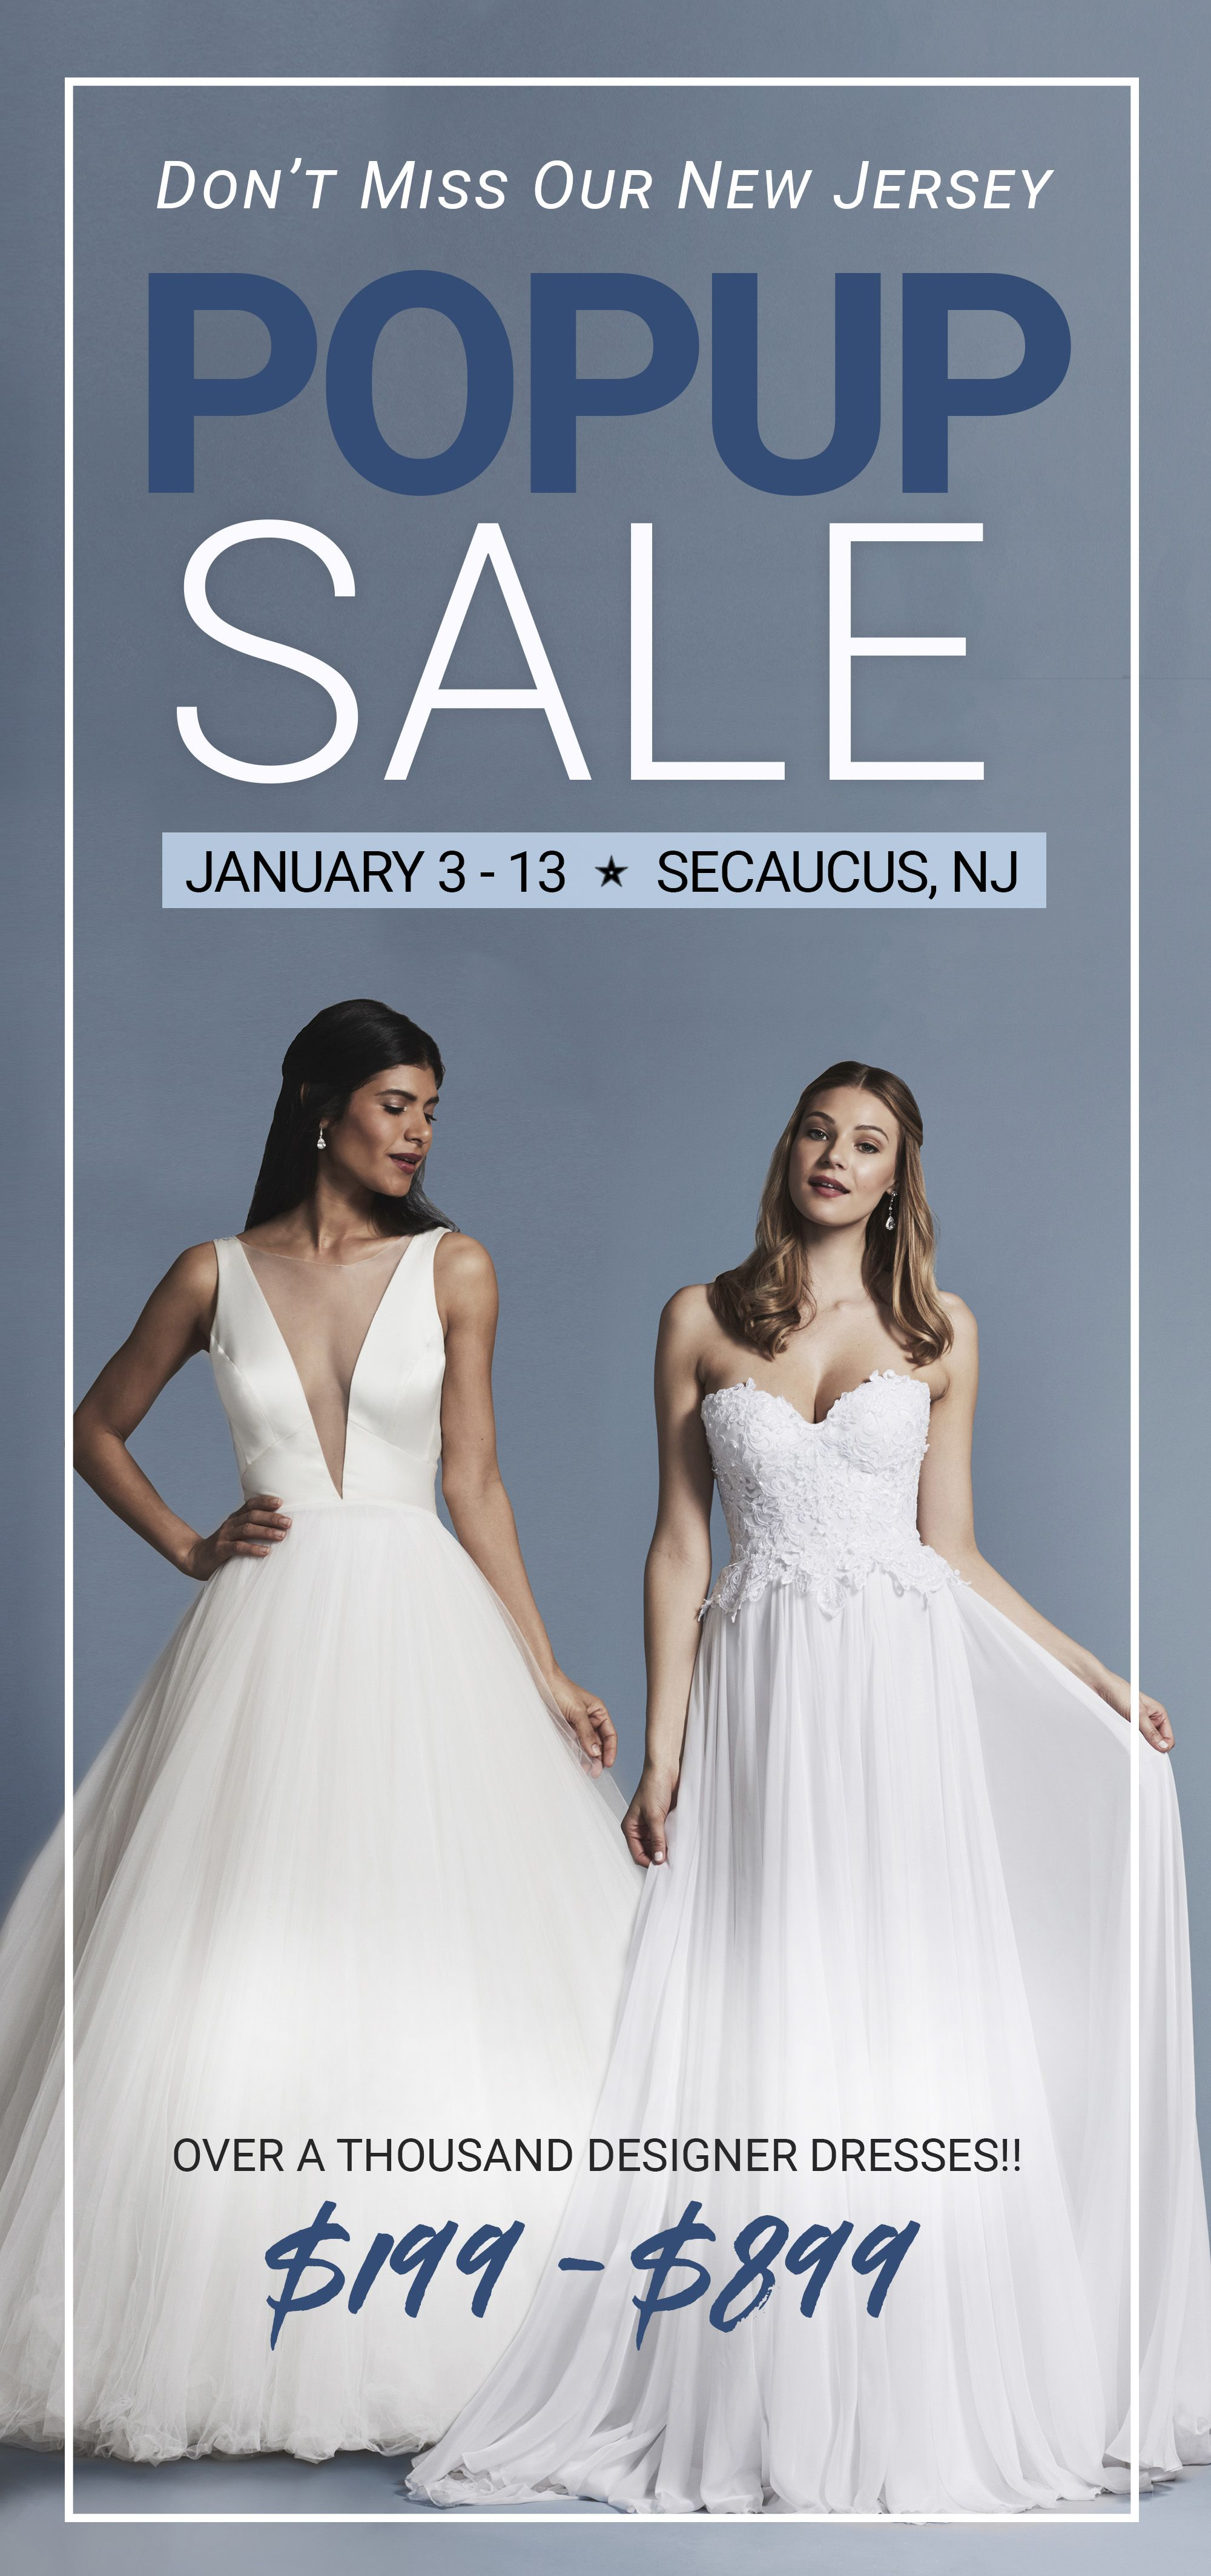 Wedding Dress Sale In Secaucus New Jersey Kleinfeld Bridal Wedding Dresses For Sale Ball Gowns